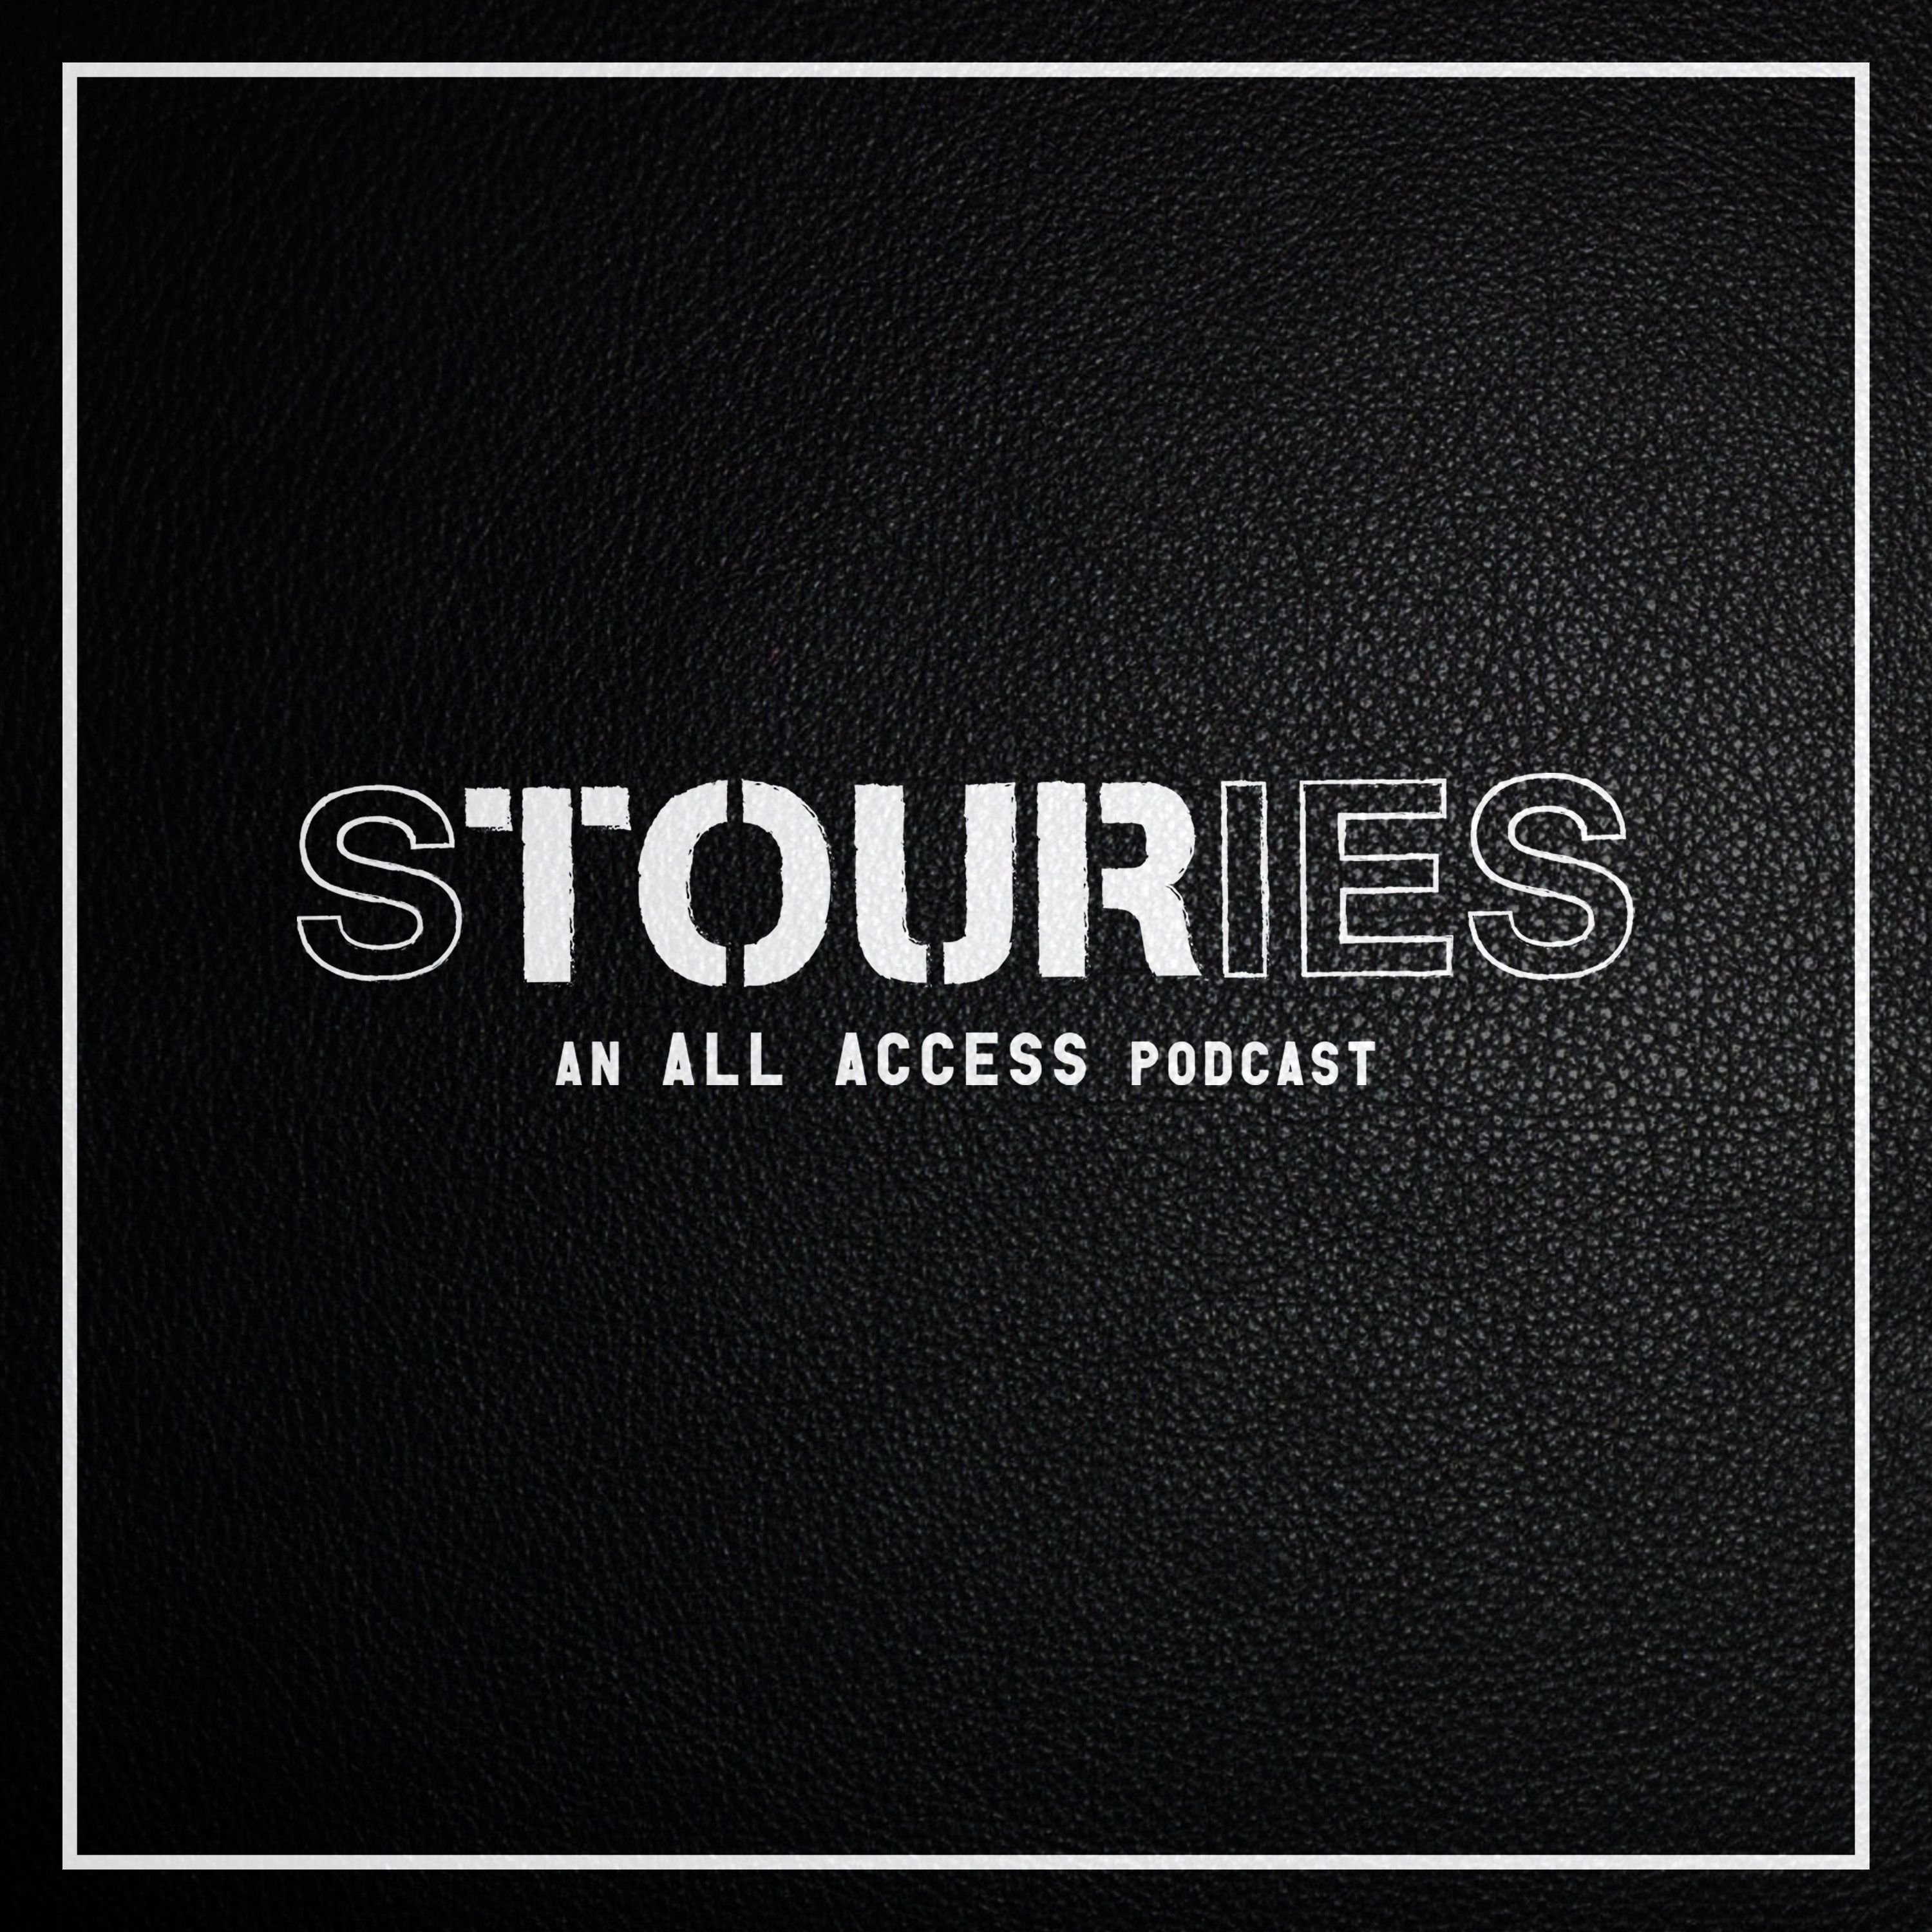 STOURIES: An All Access Podcast